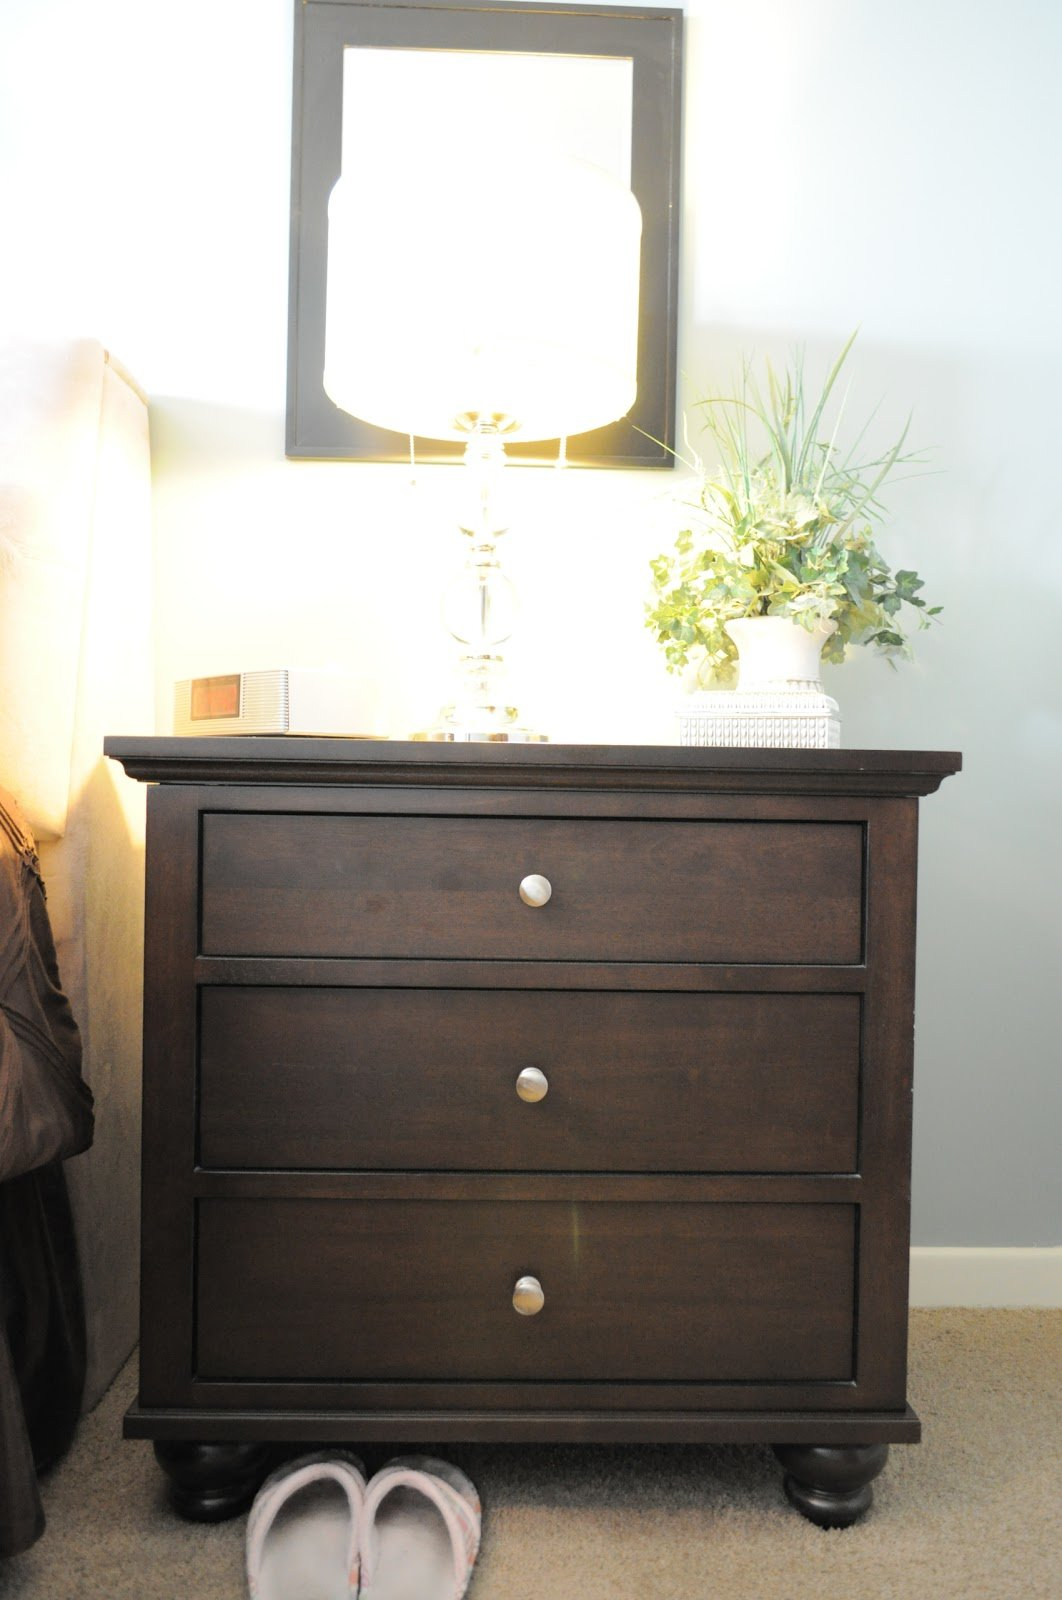 Best How I Organize My Bedroom The Nightstands Organizing With Pictures